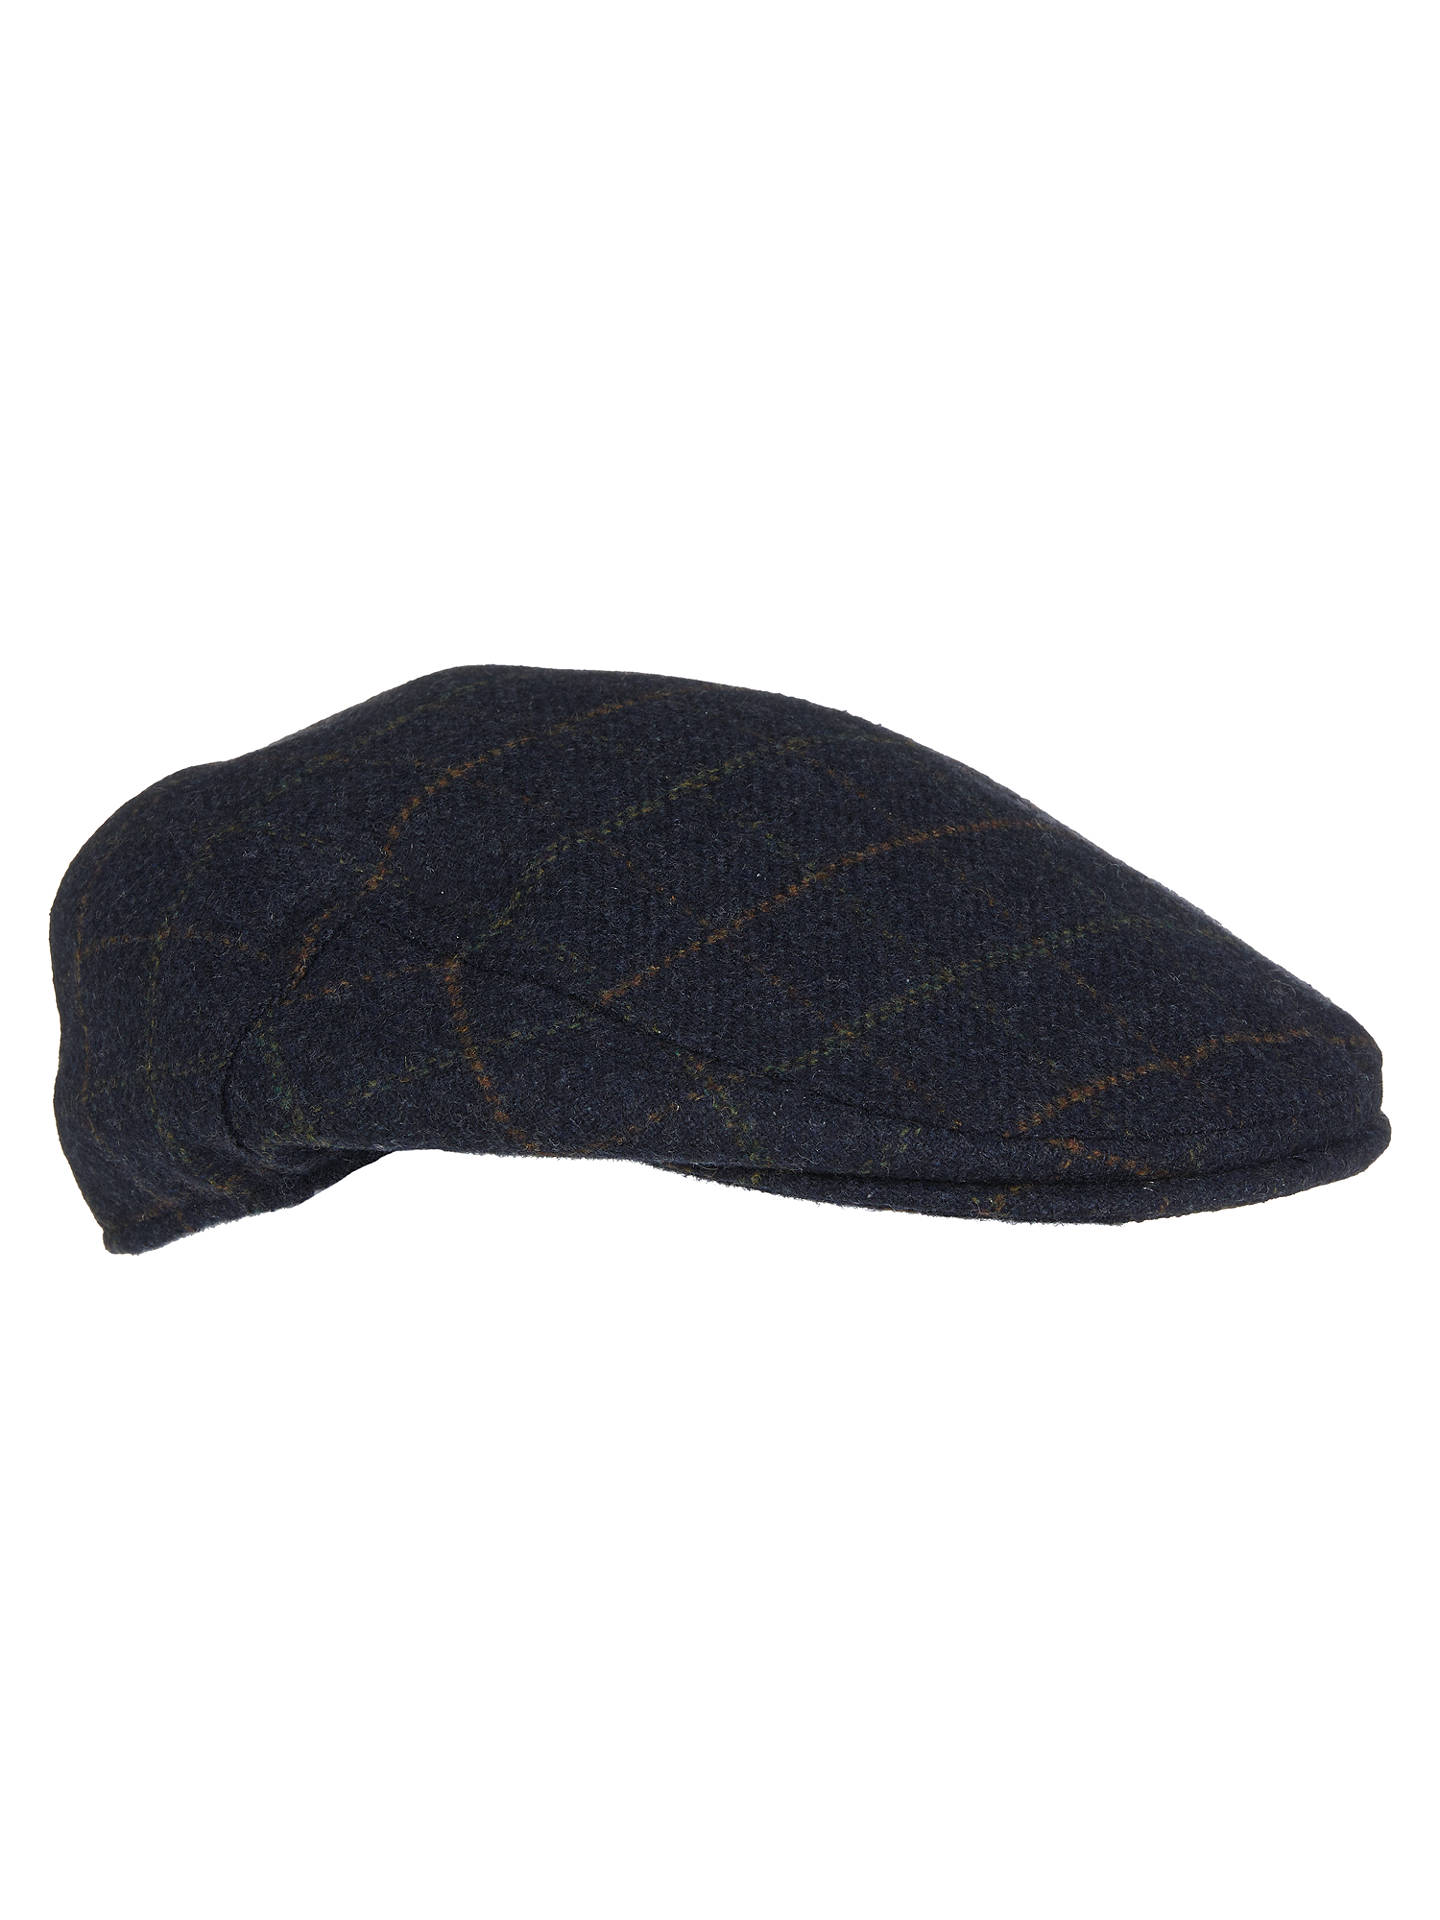 2998fad4b3a8e ... netherlands buyjohn lewis check flat cap navy s m online at johnlewis  7543f 82775